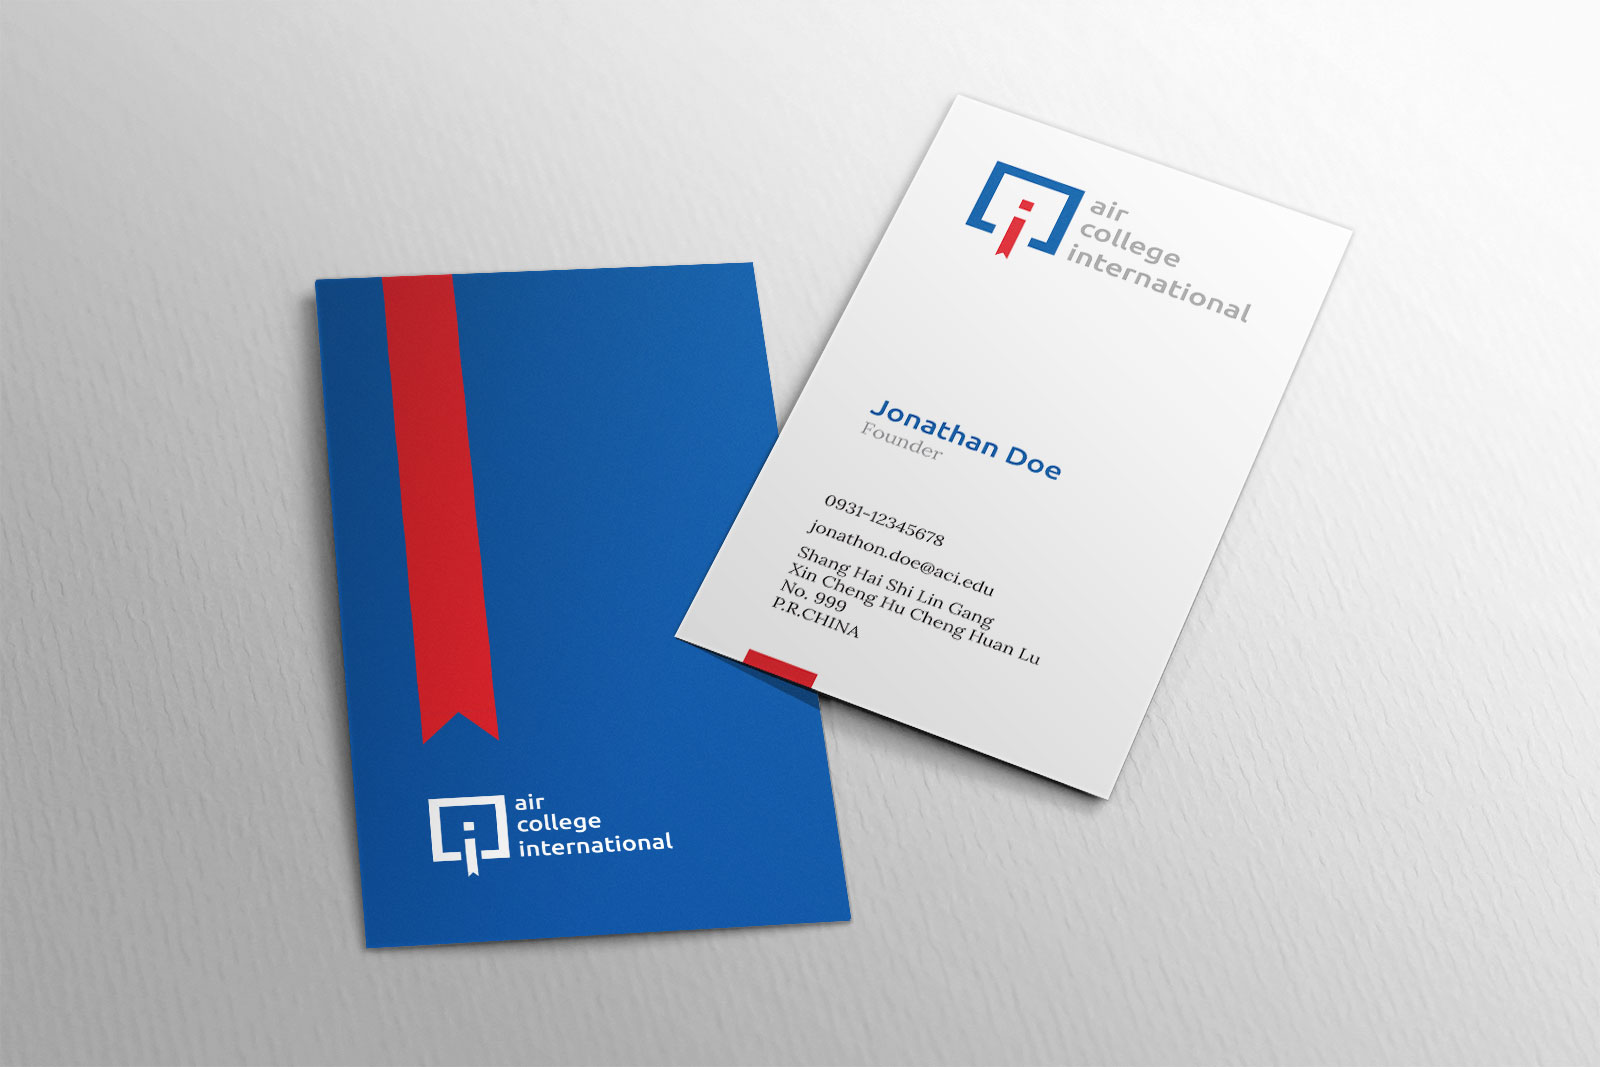 Air College International - Business Cards